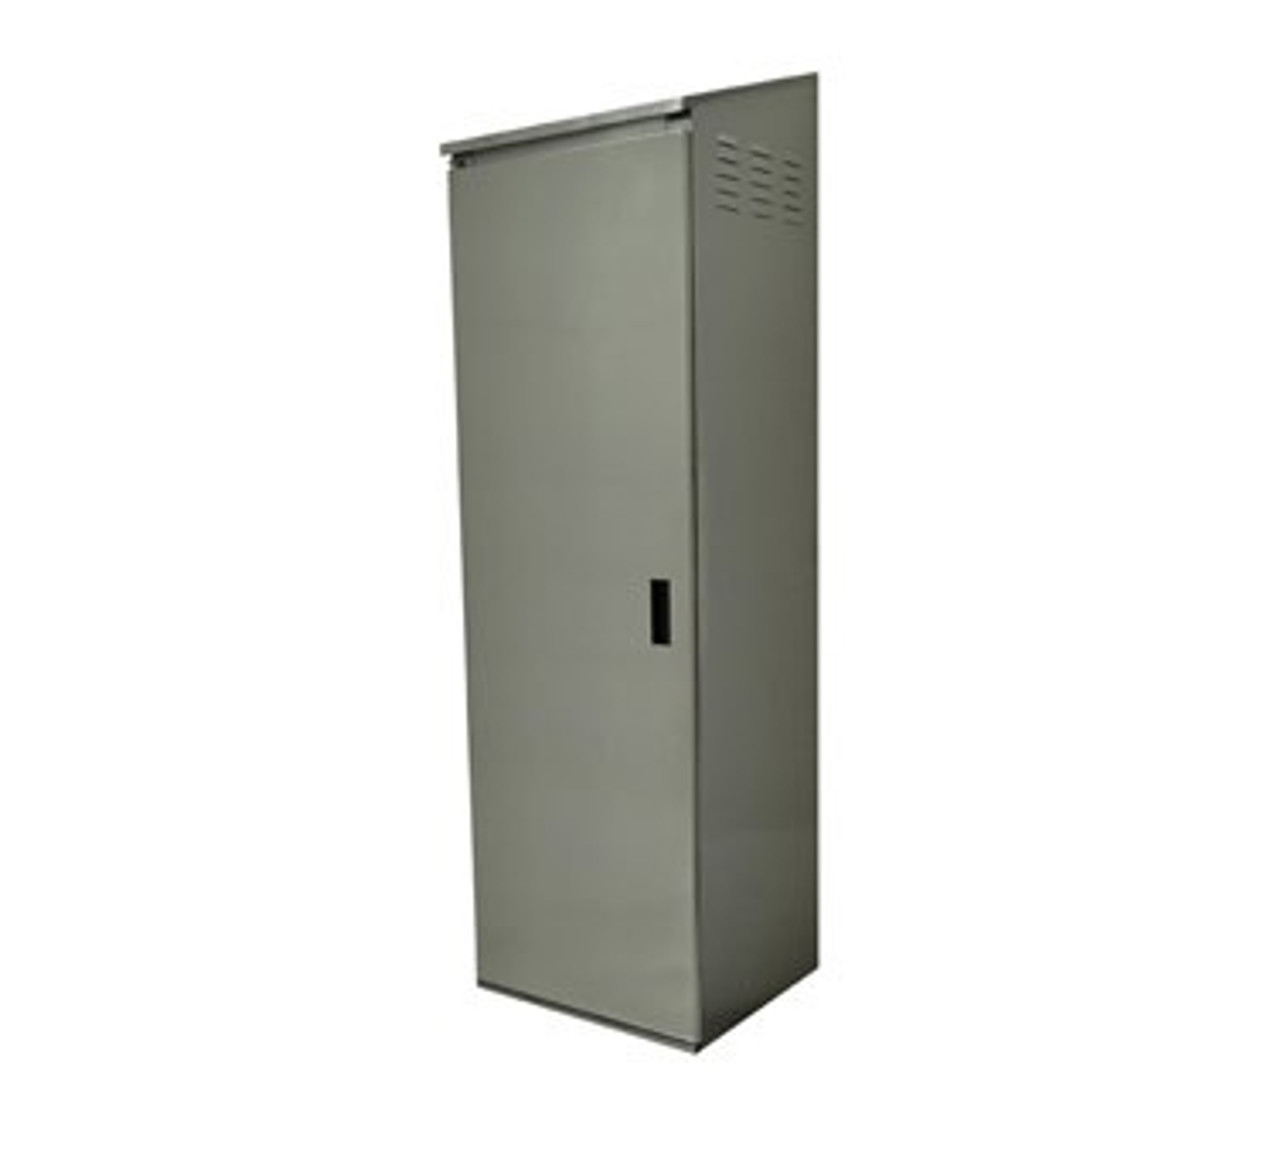 """Mop Sink Cabinet with 16"""" x 20"""" Bowl, Stainless Steel"""